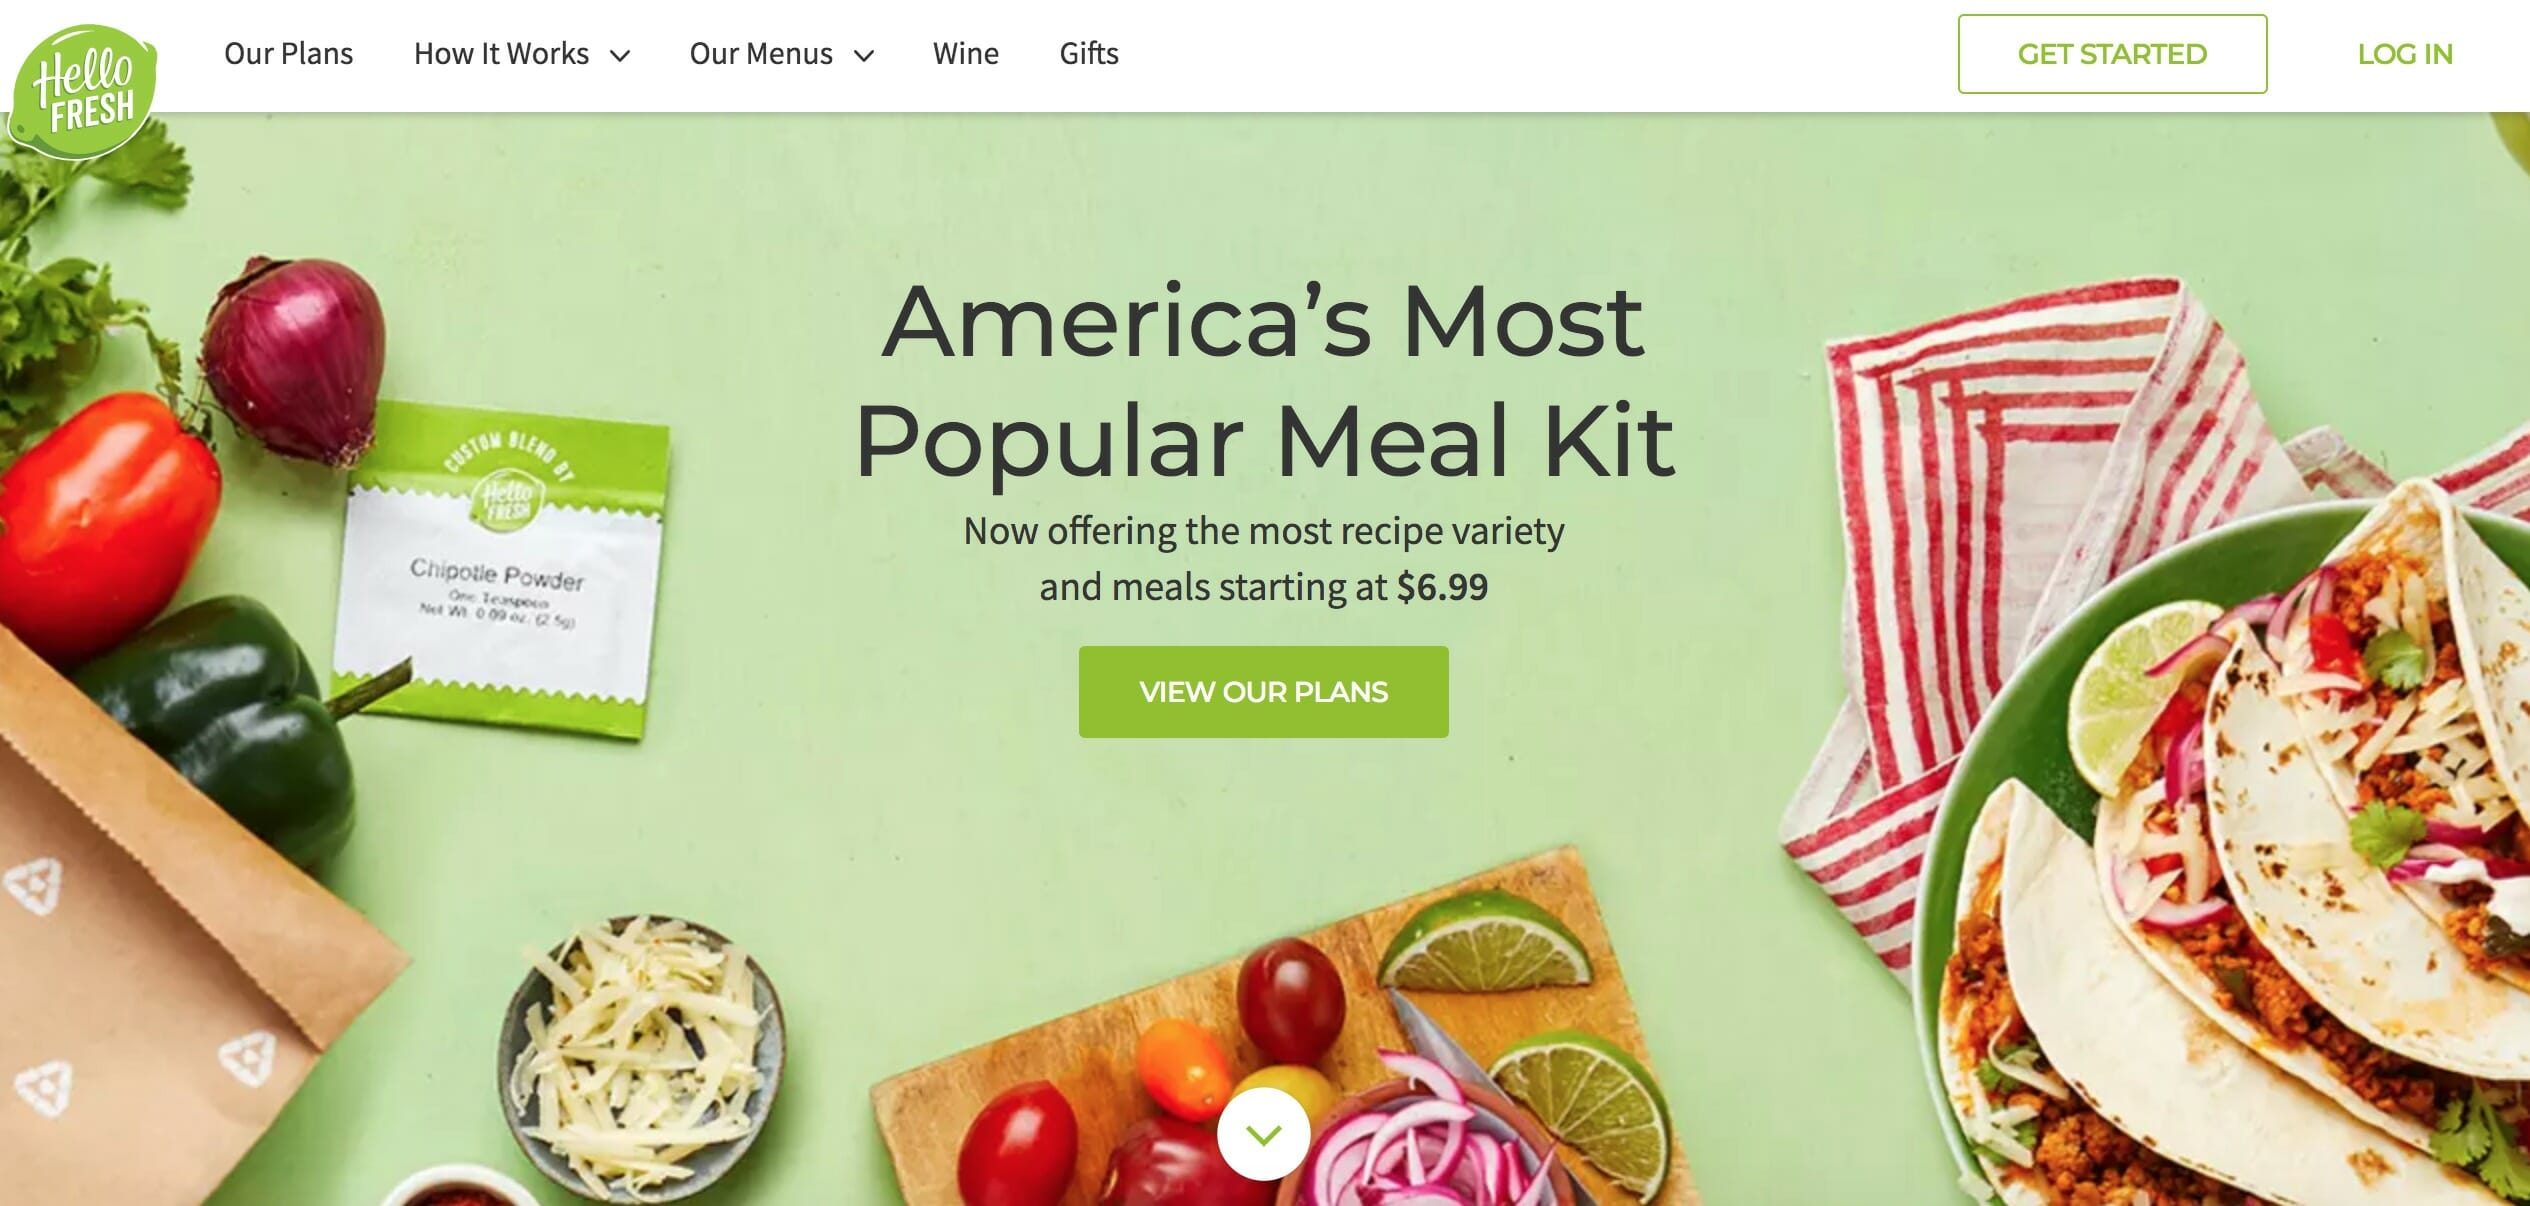 Programs Like Hello Fresh